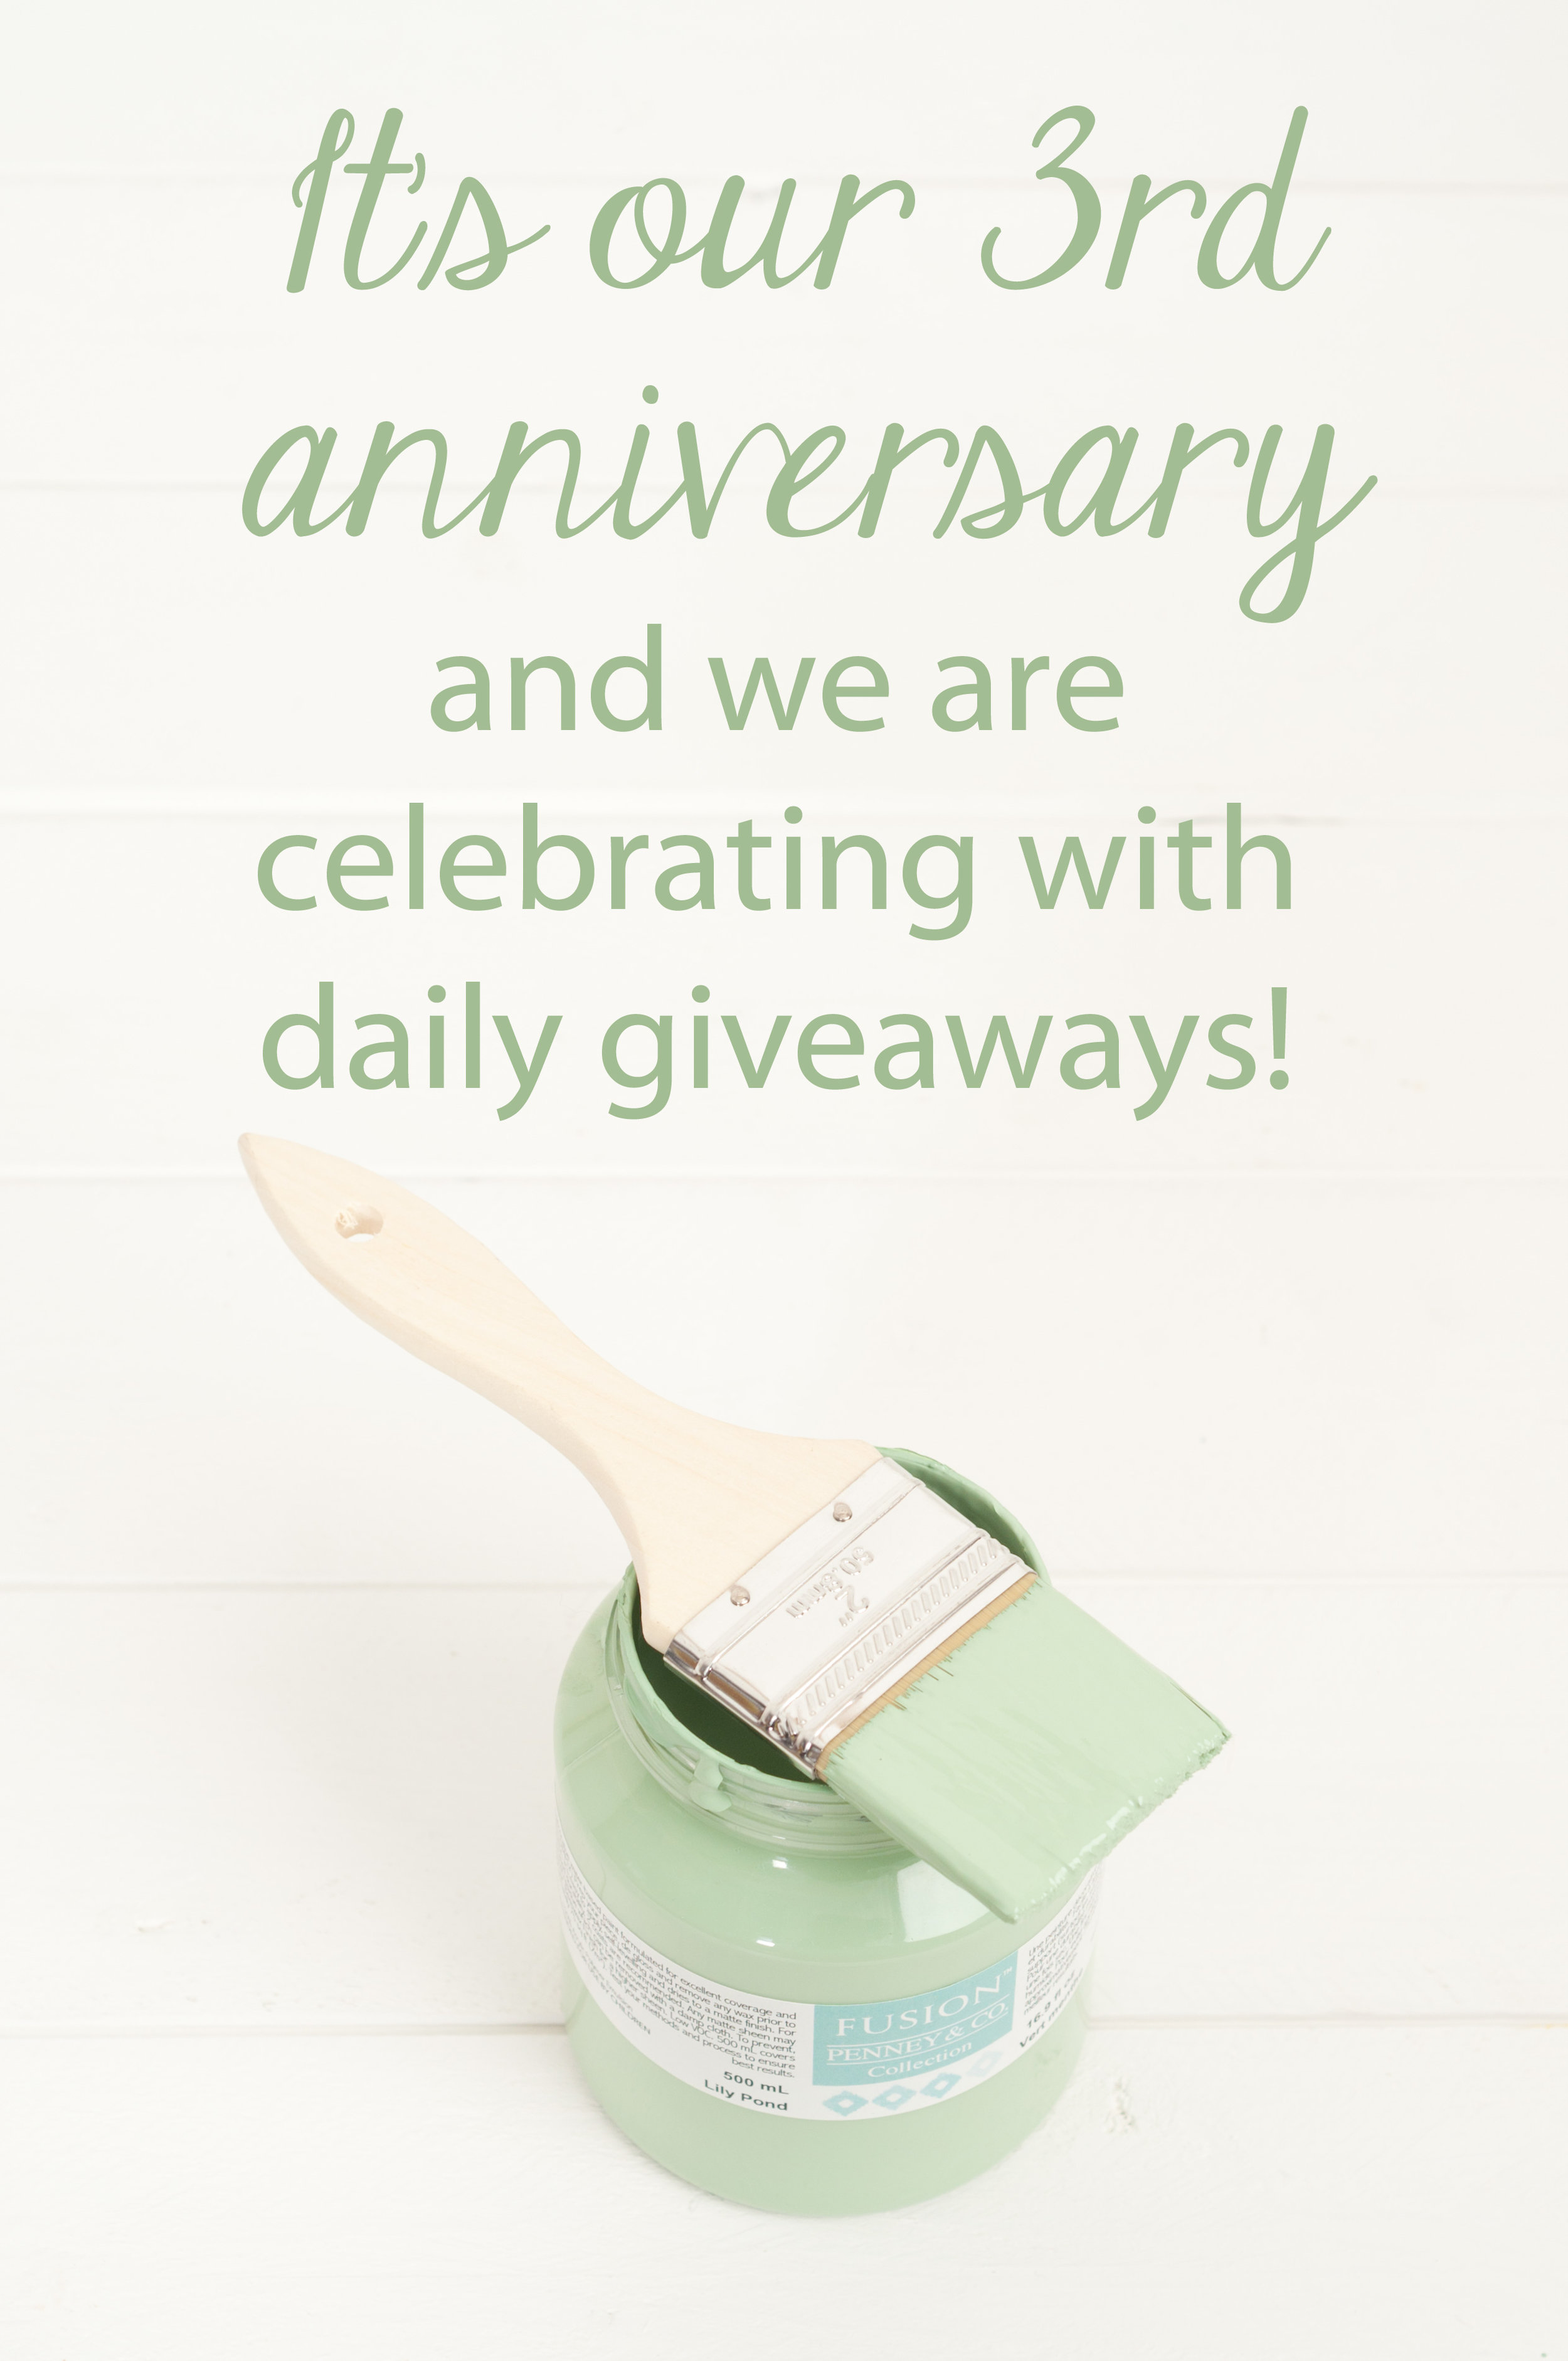 My Painted Door is having 14 days of giveaways to celebrate our 3rd Anniversary!